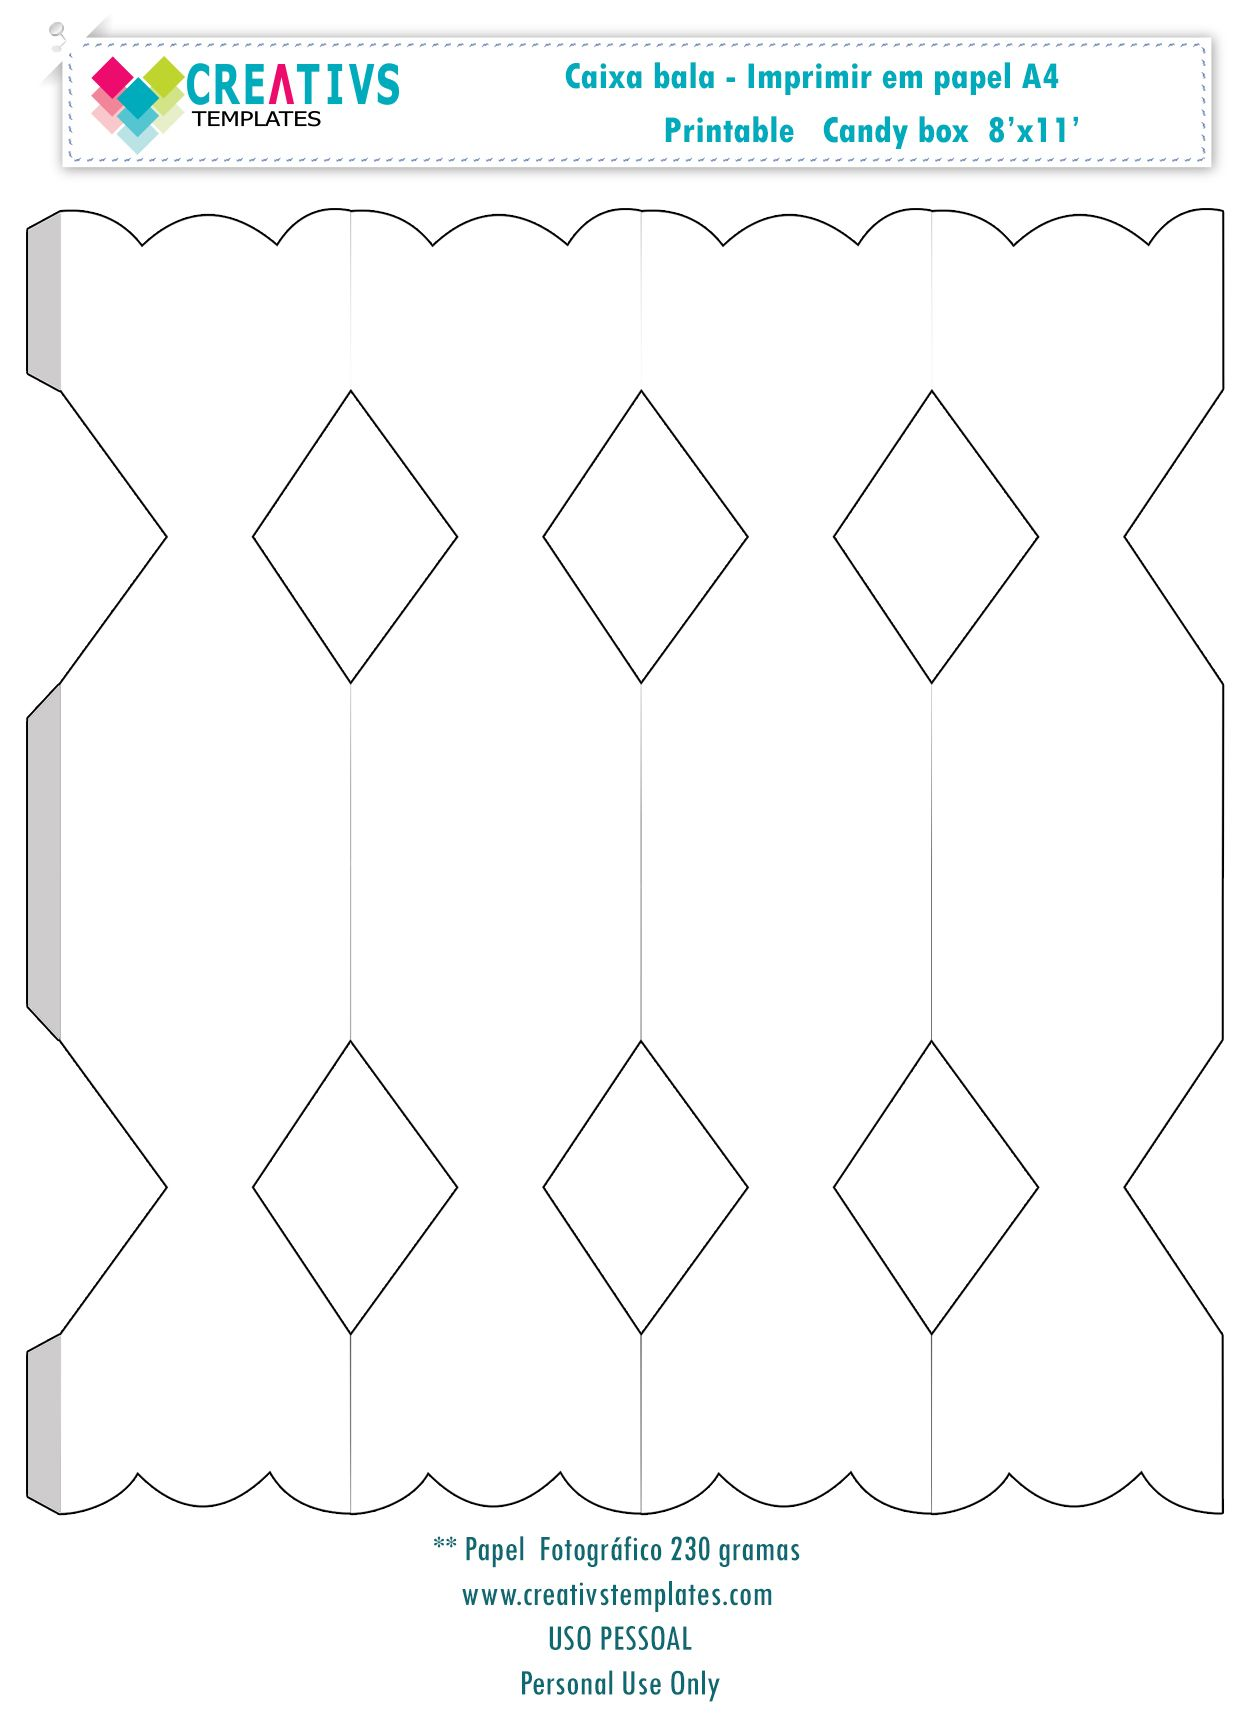 Pin by Crafty Annabelle on Templates | Templates, Origami ... - photo#50